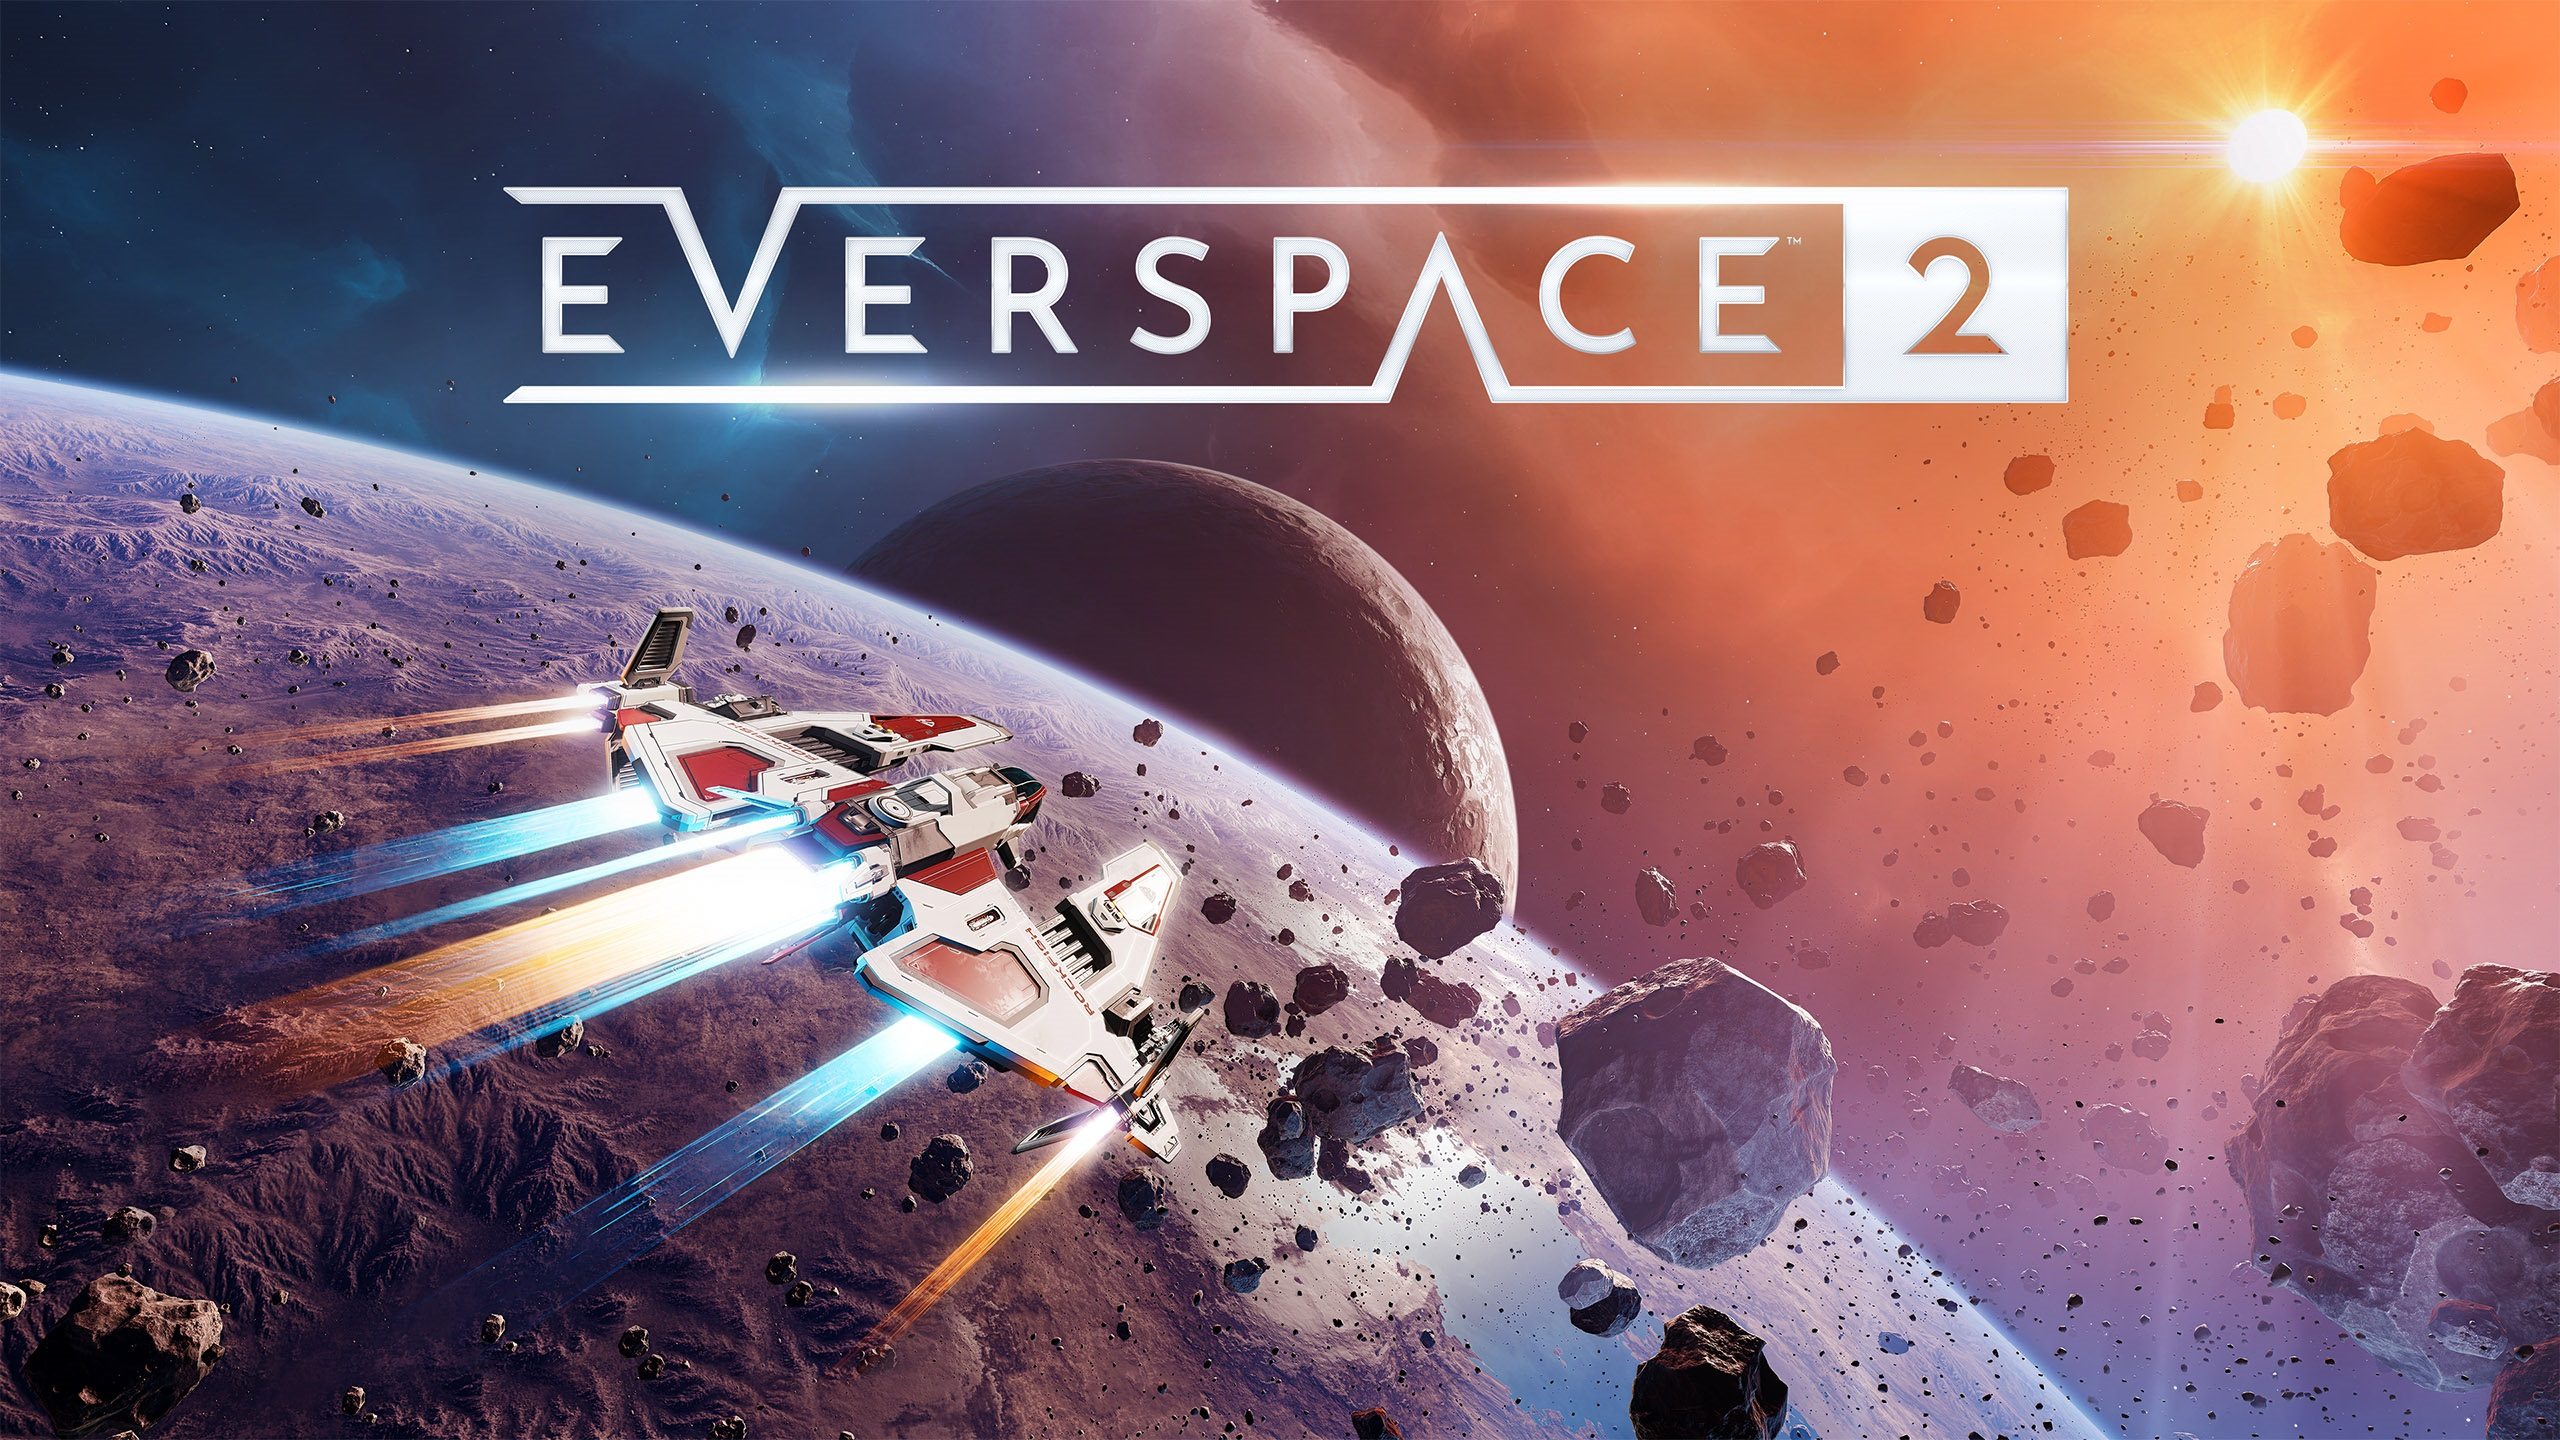 Contest: Get your hands on an exclusive prototype build of Everspace 2 screenshot